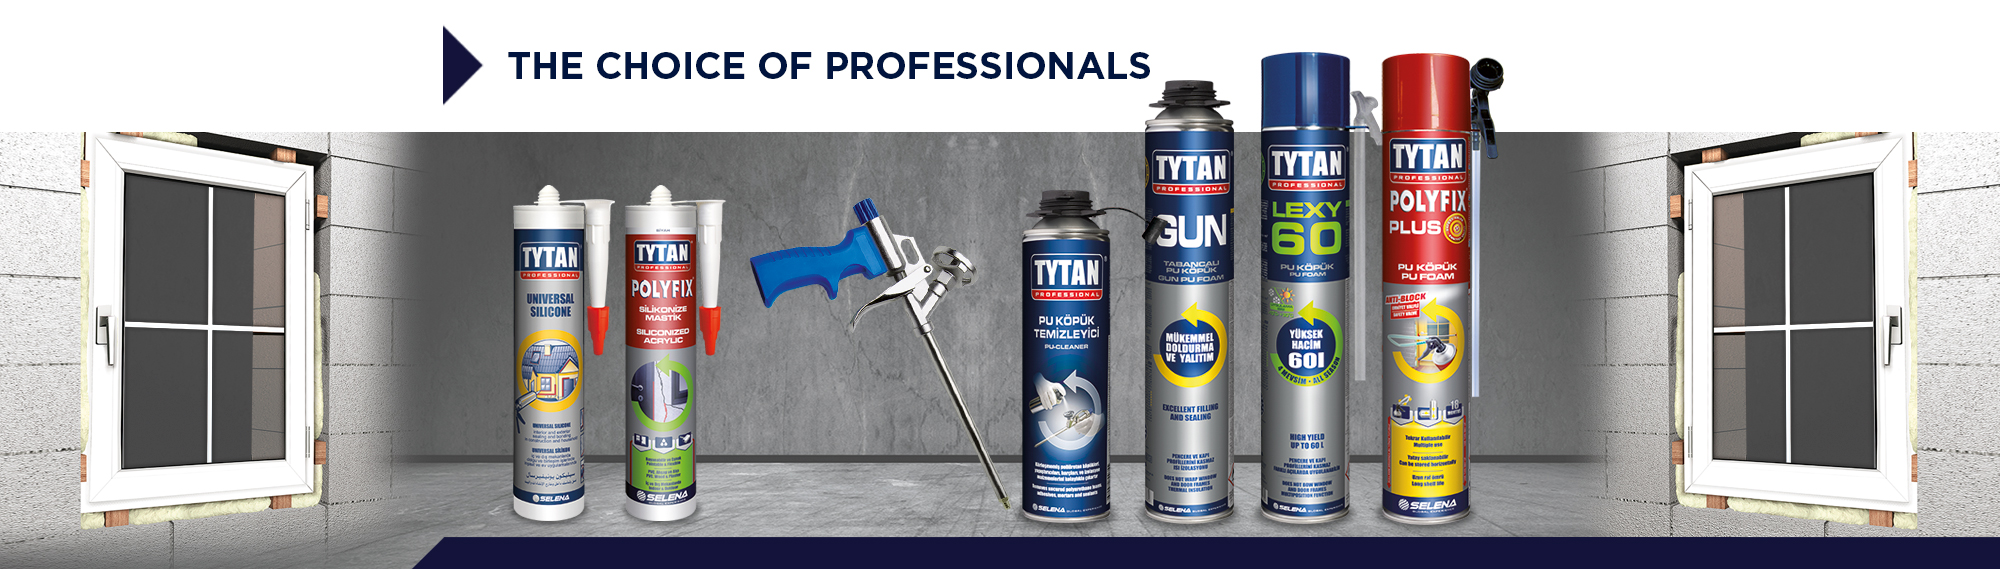 Tytan Professional: the choice of professionals